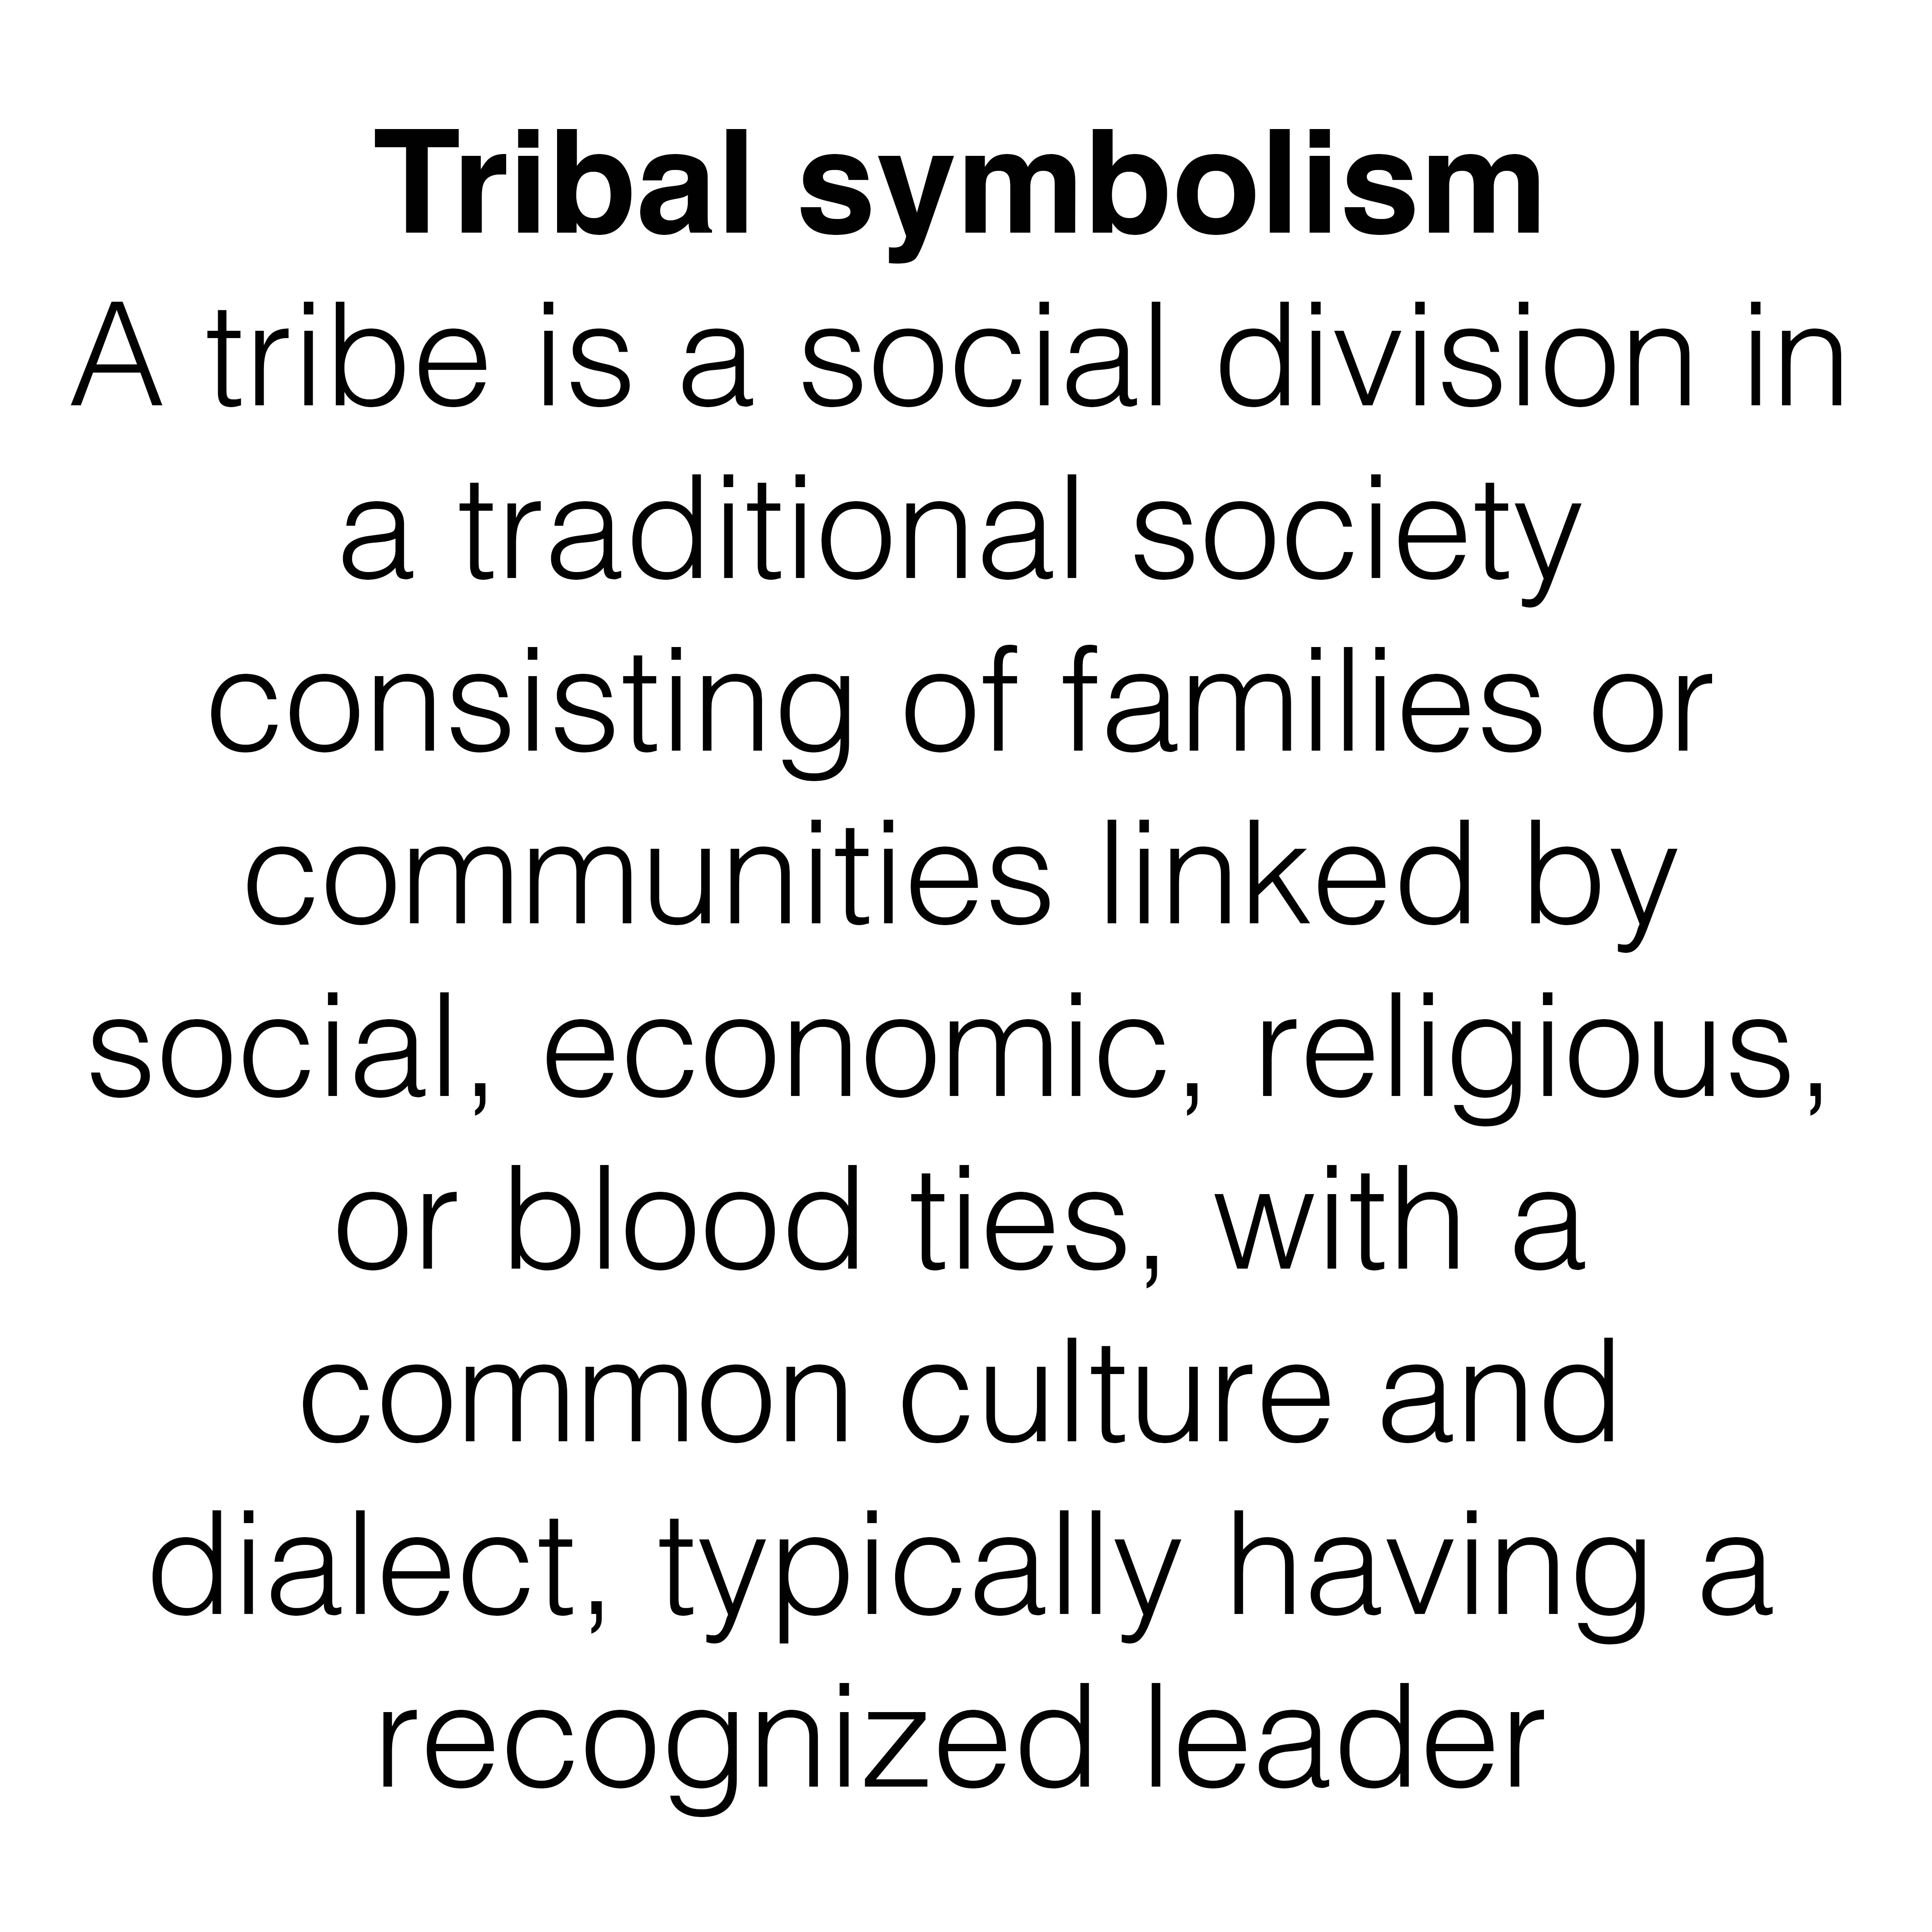 Definition of a tribe the characteristics that tribal symbolism definition of a tribe the characteristics that tribal symbolism bases itself around buycottarizona Gallery